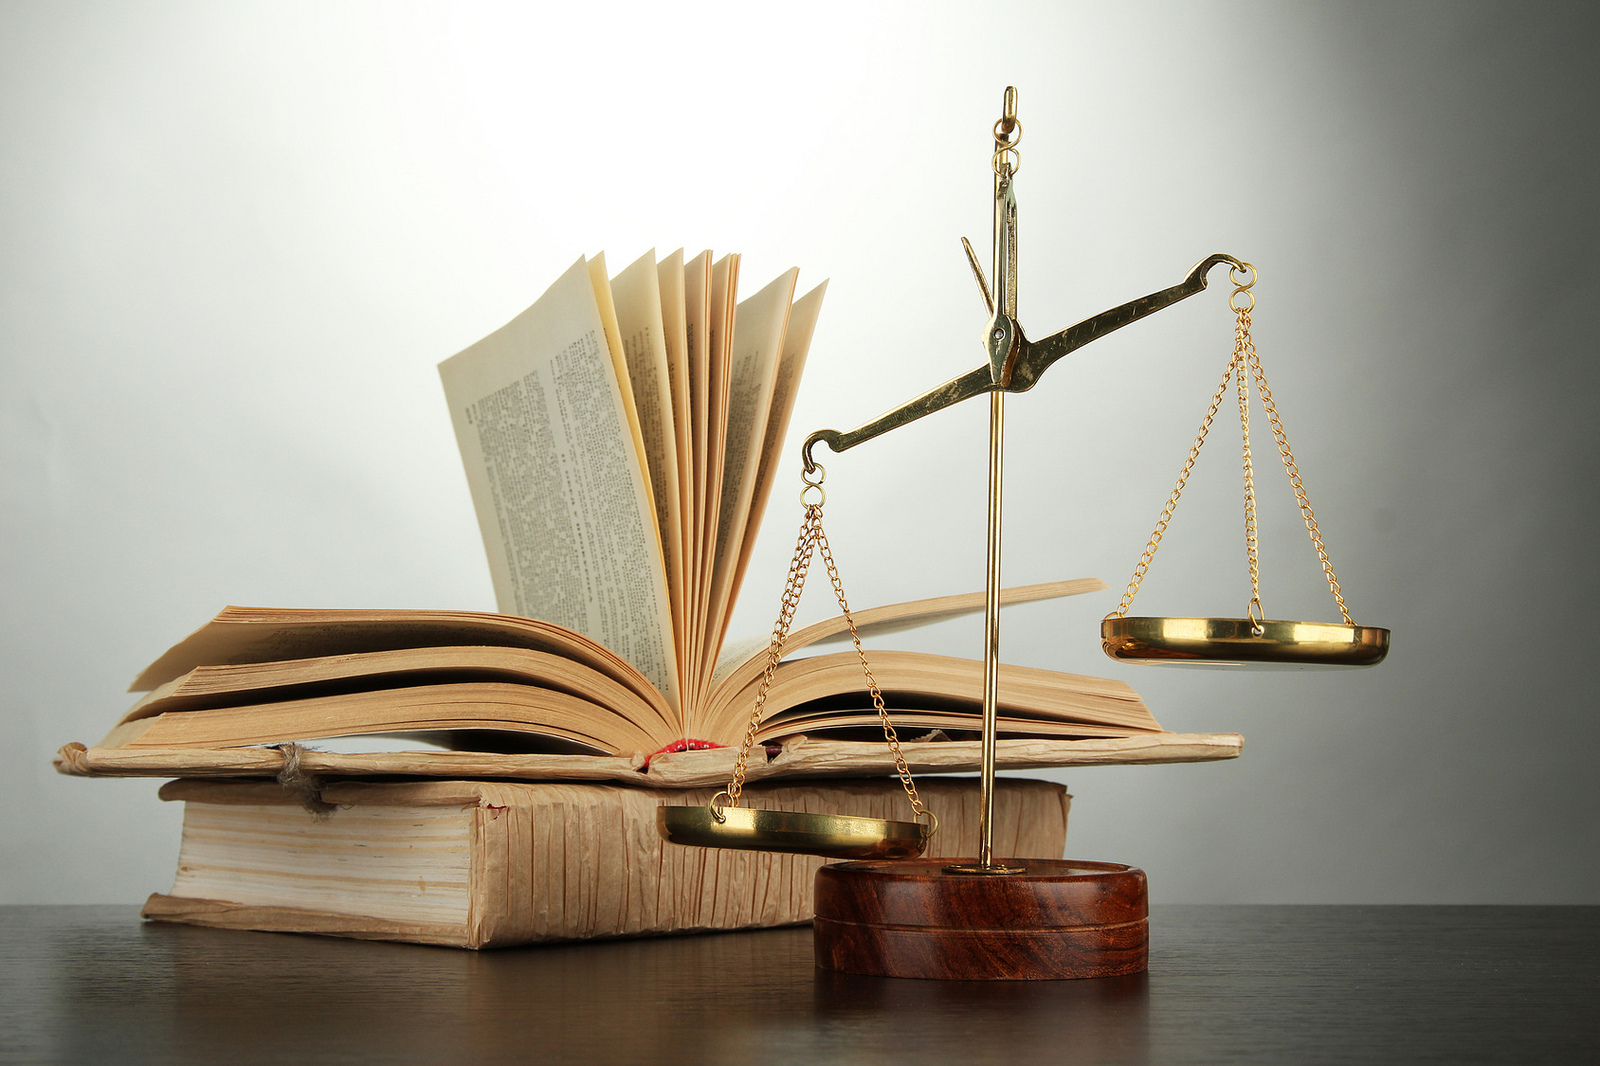 7 Tips for Working with Court Interpreters - NAJIT